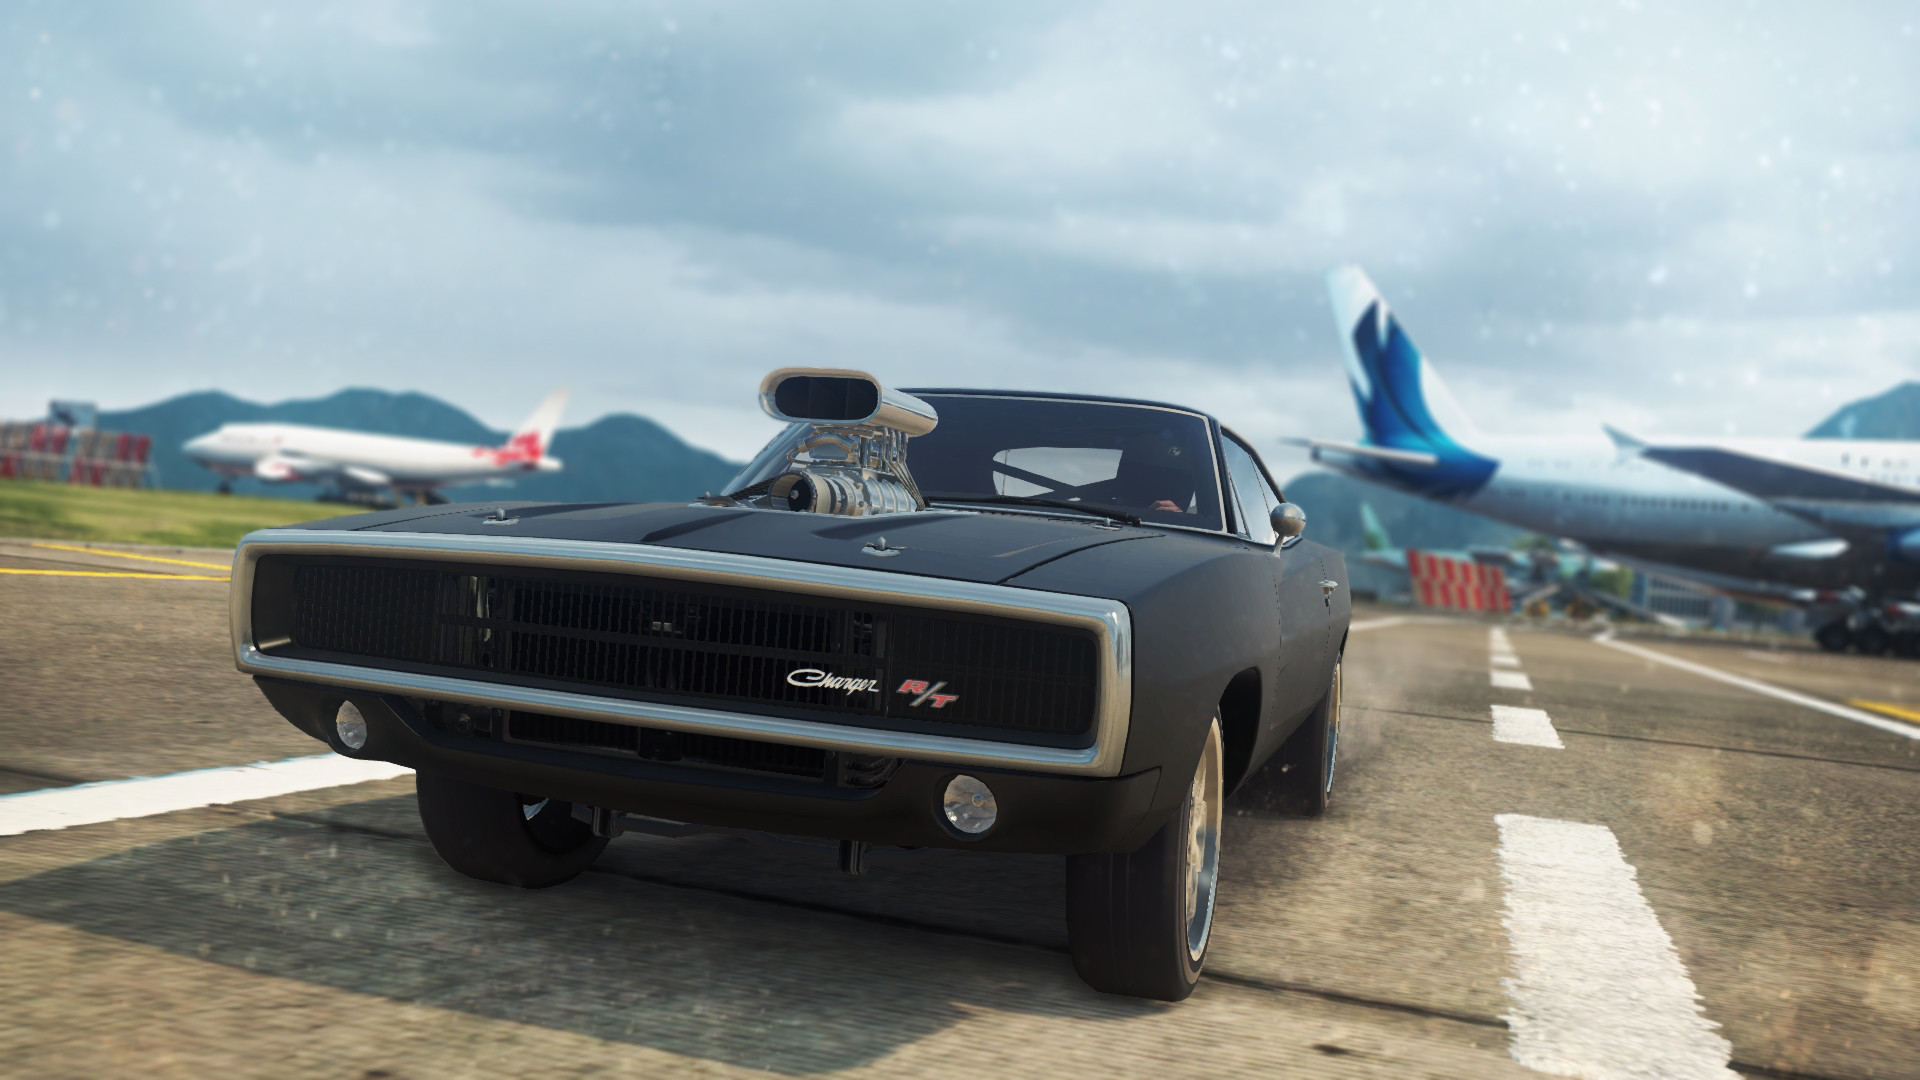 Dodge Charger R/T (1970) | Need for Speed Wiki | FANDOM powered by Wikia